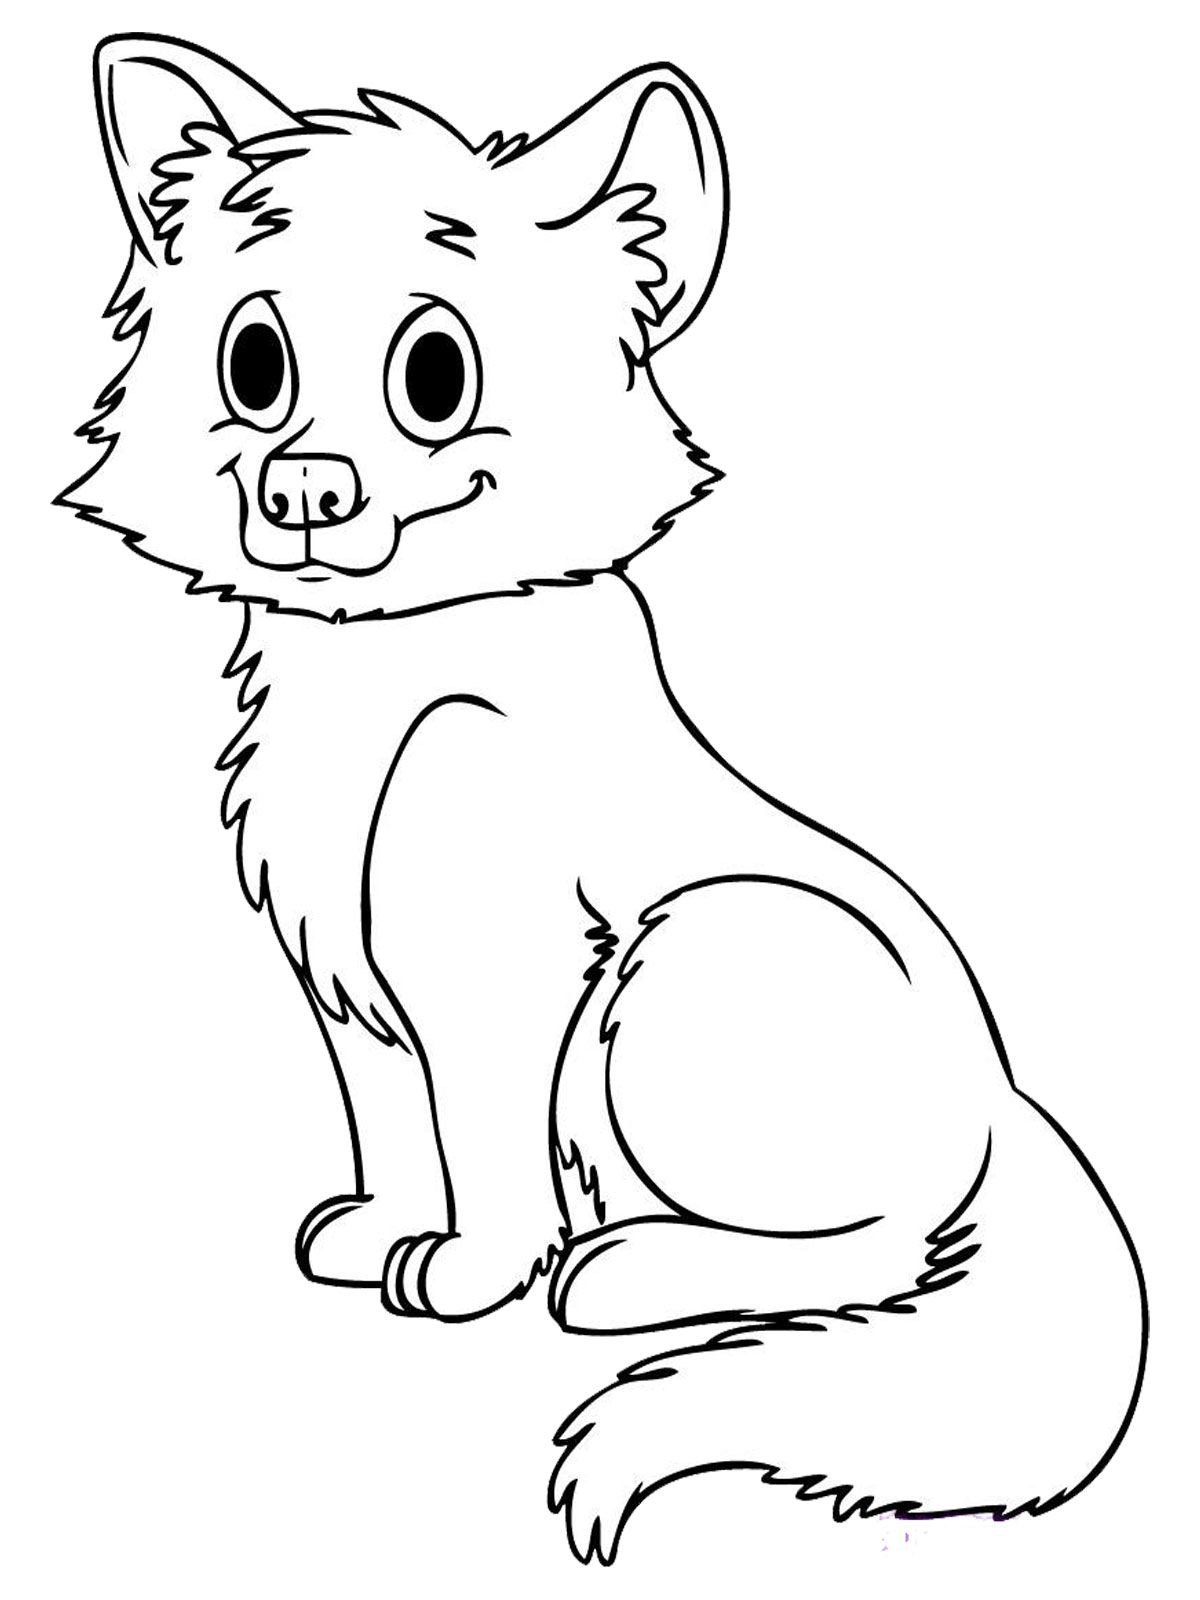 Baby Farm Animal Coloring Pages | Baby Animal Coloring Pages ...